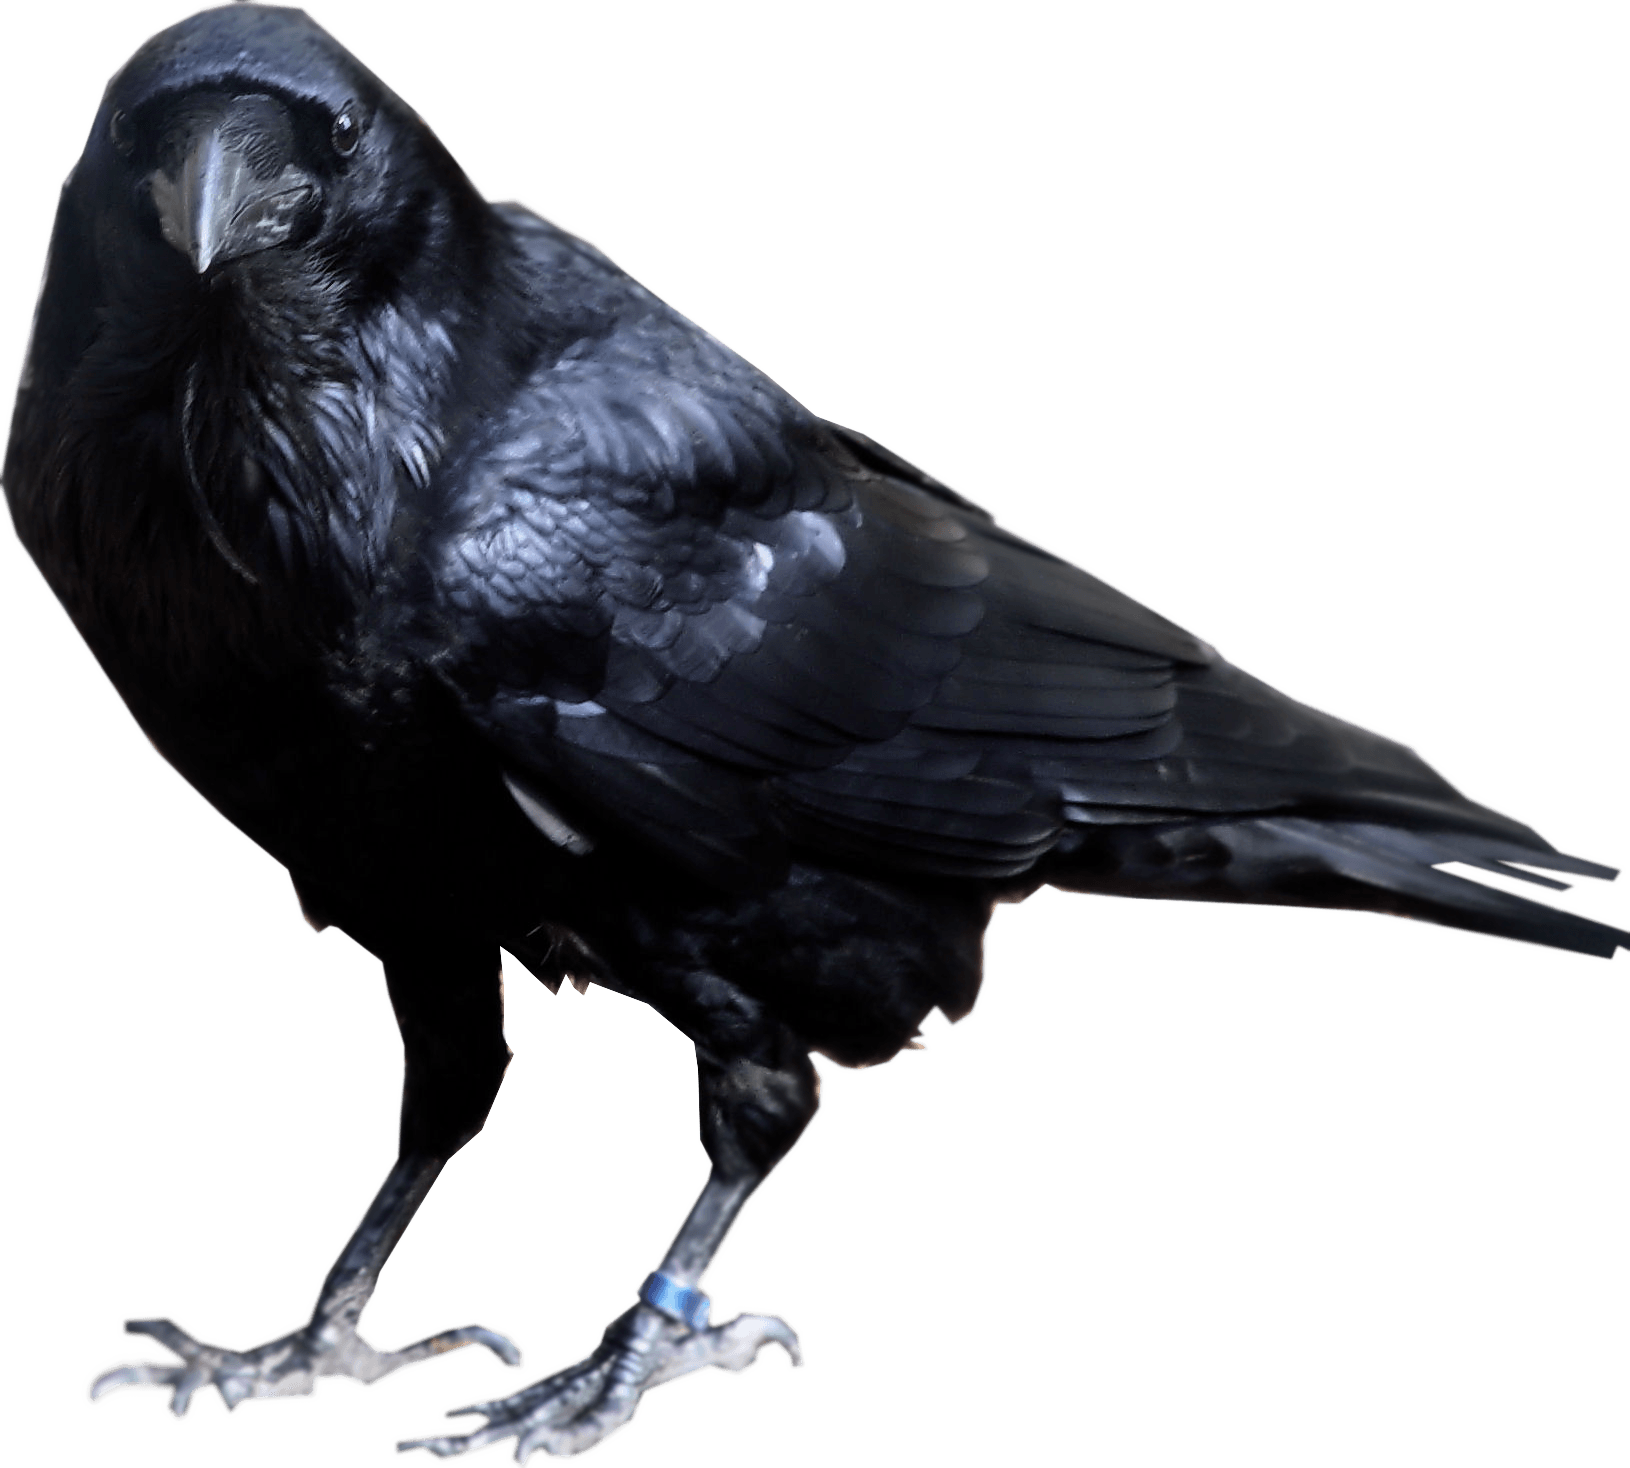 Crow looking into camera PNG Image Crow, Line art